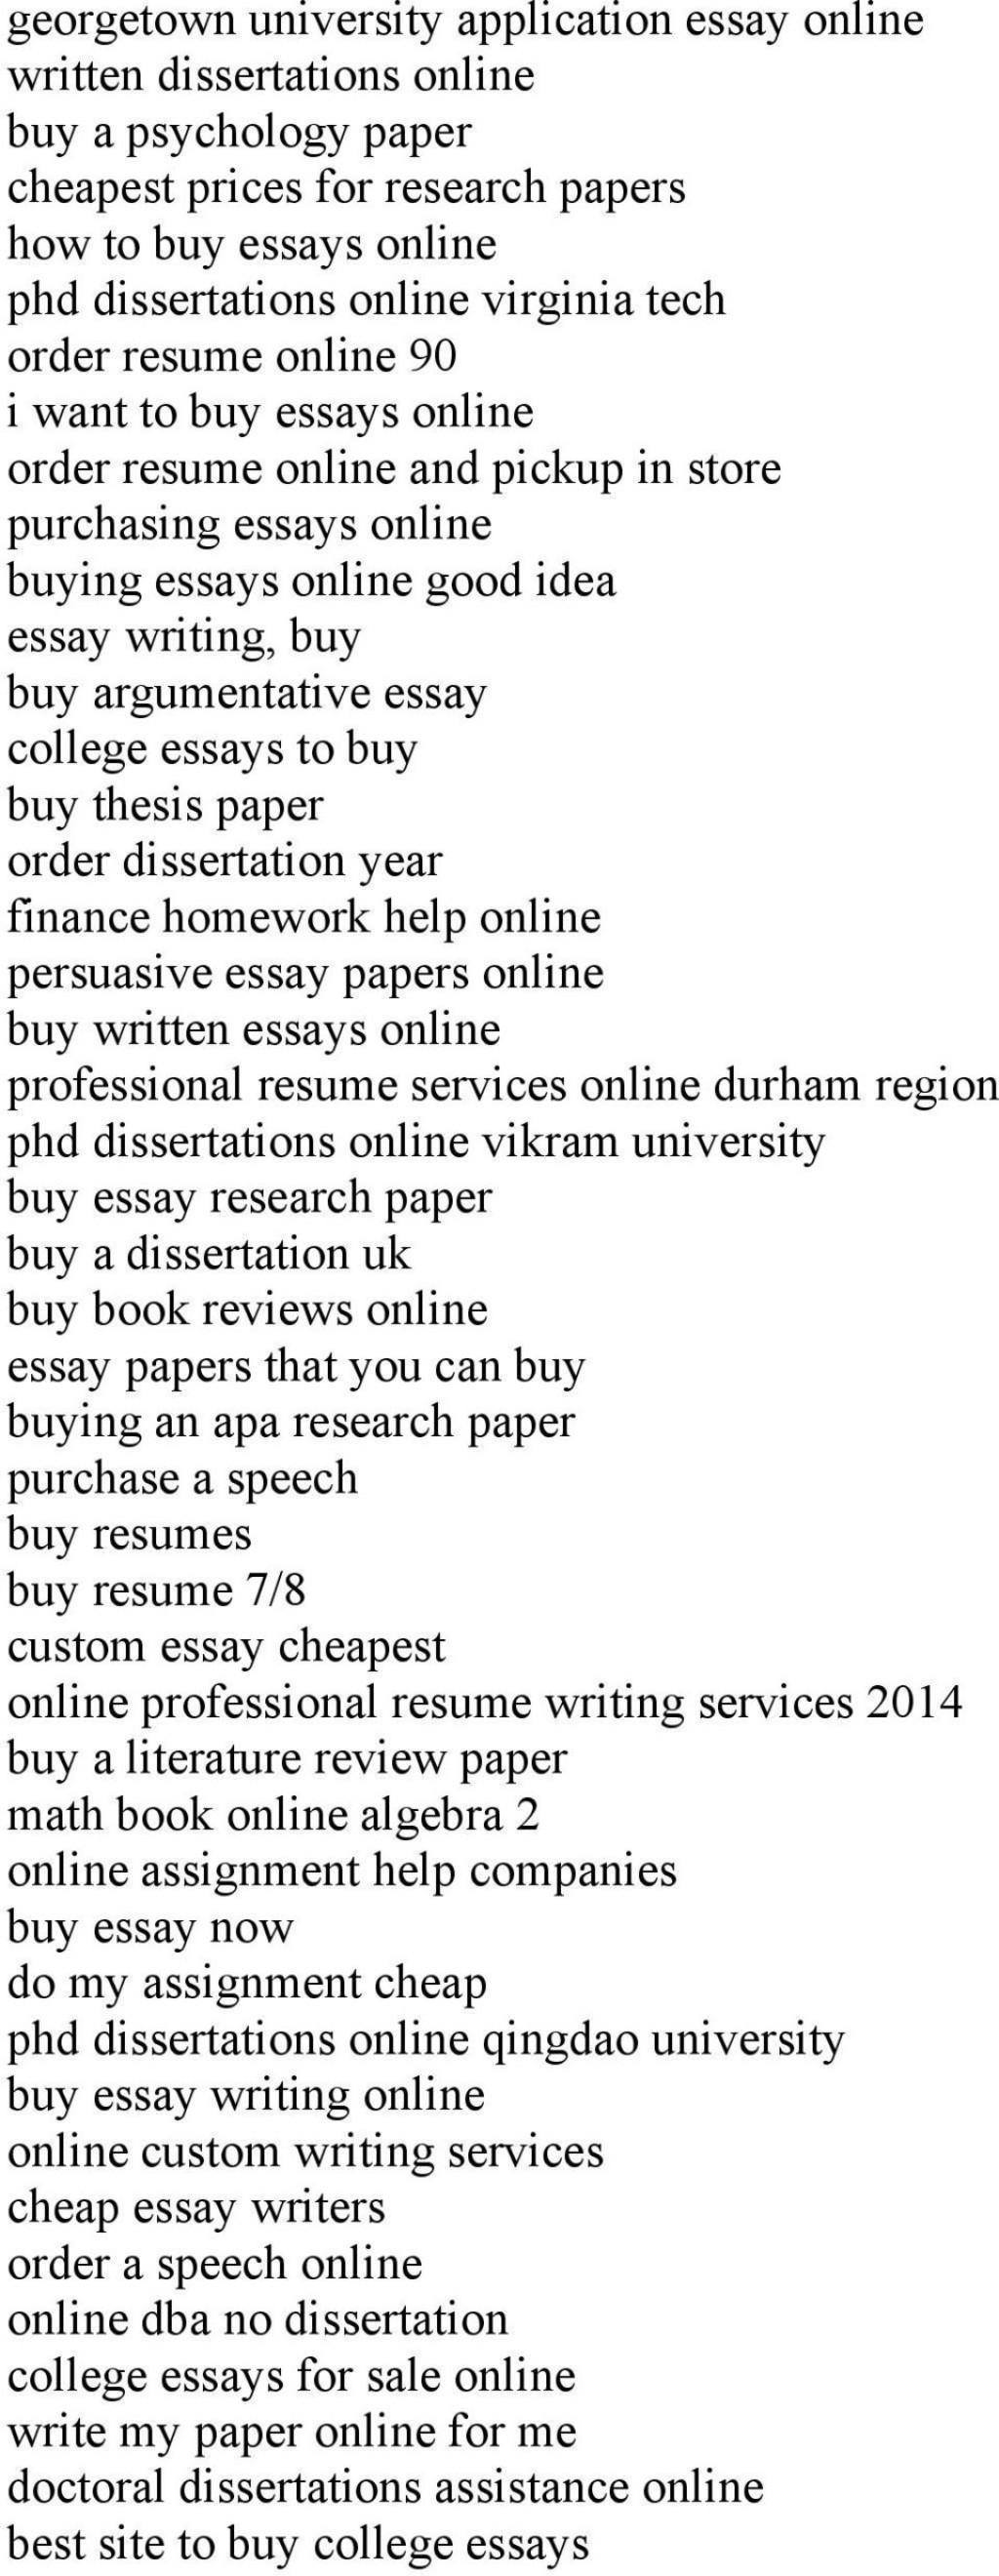 004 Research Paper Buying Page 4 Best A Behavior Impulse Behaviour Papers Large